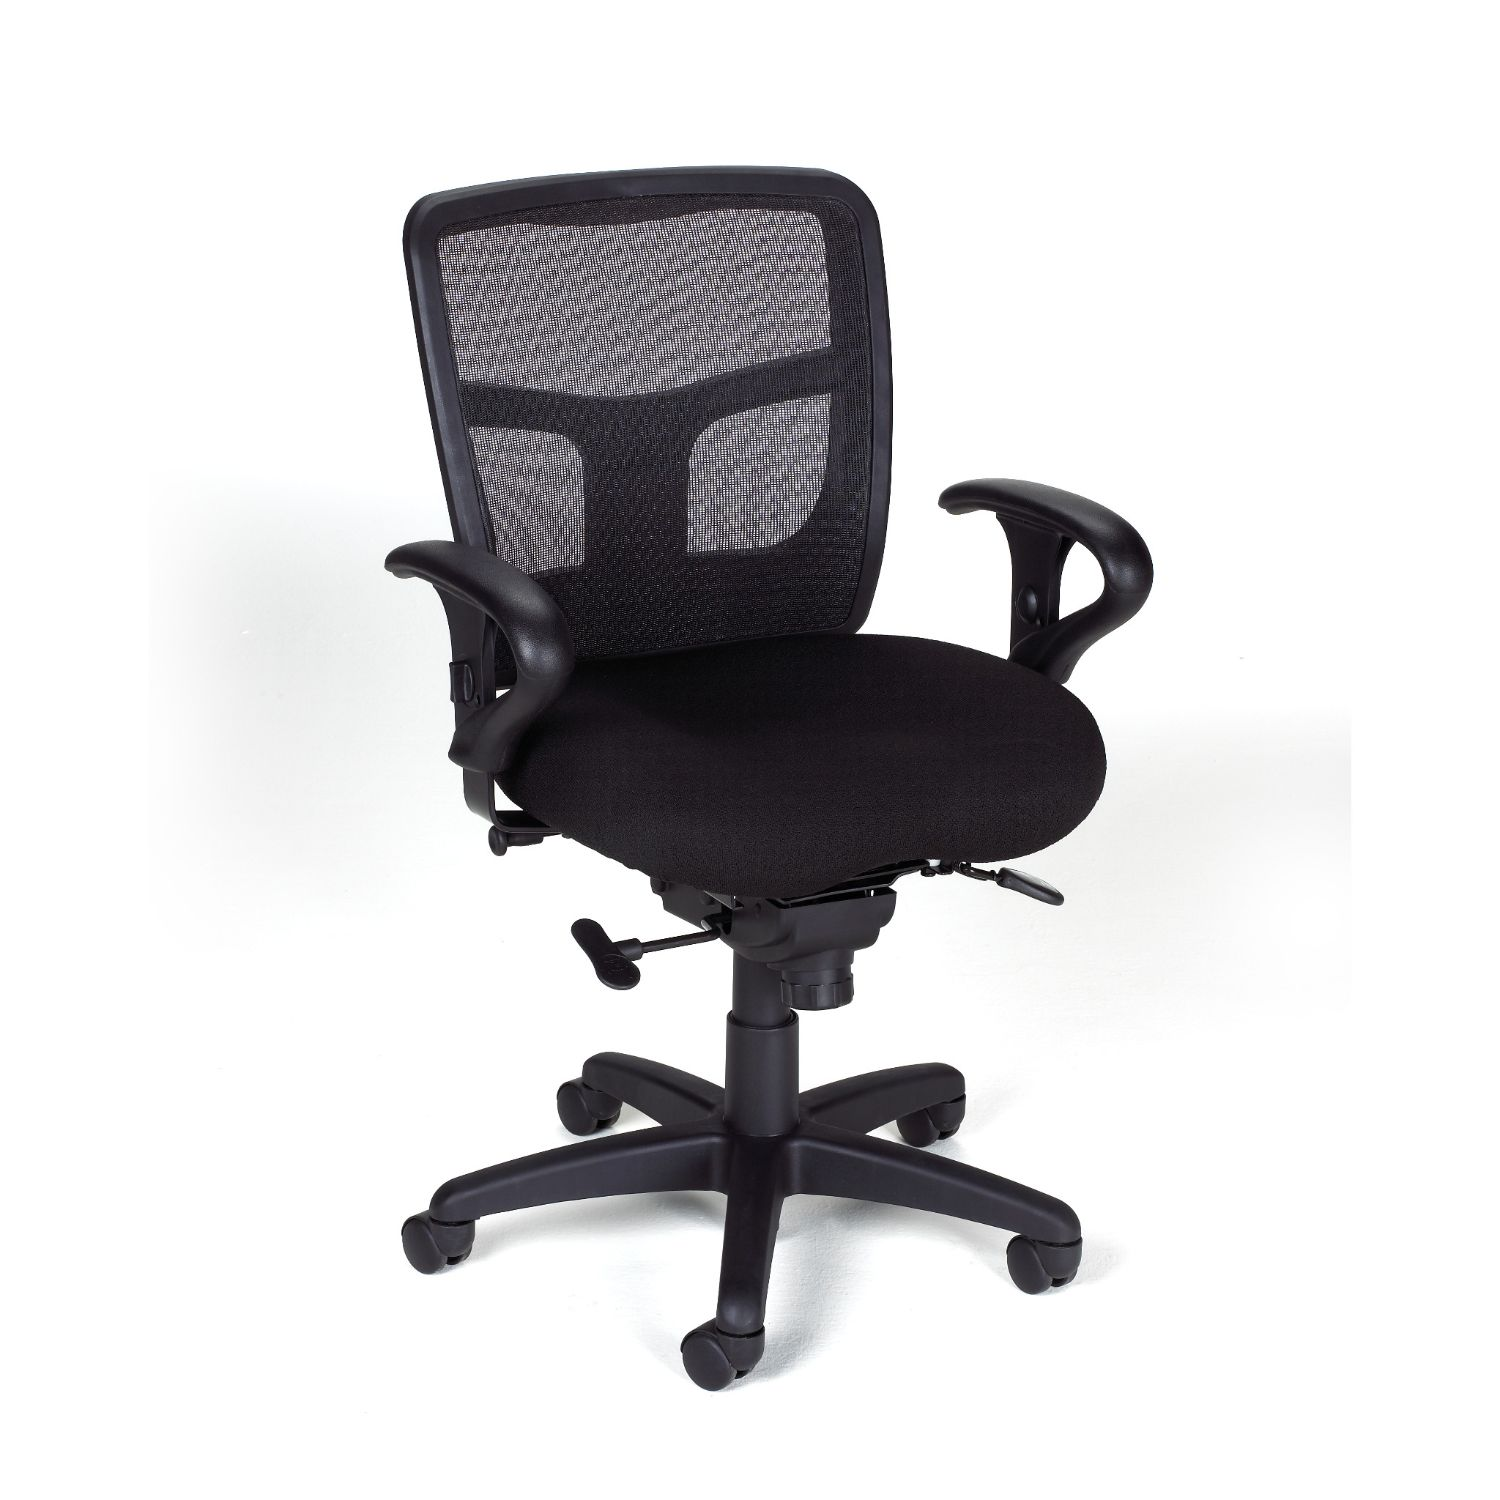 impress ultra mid back chair with adjustable loop arms